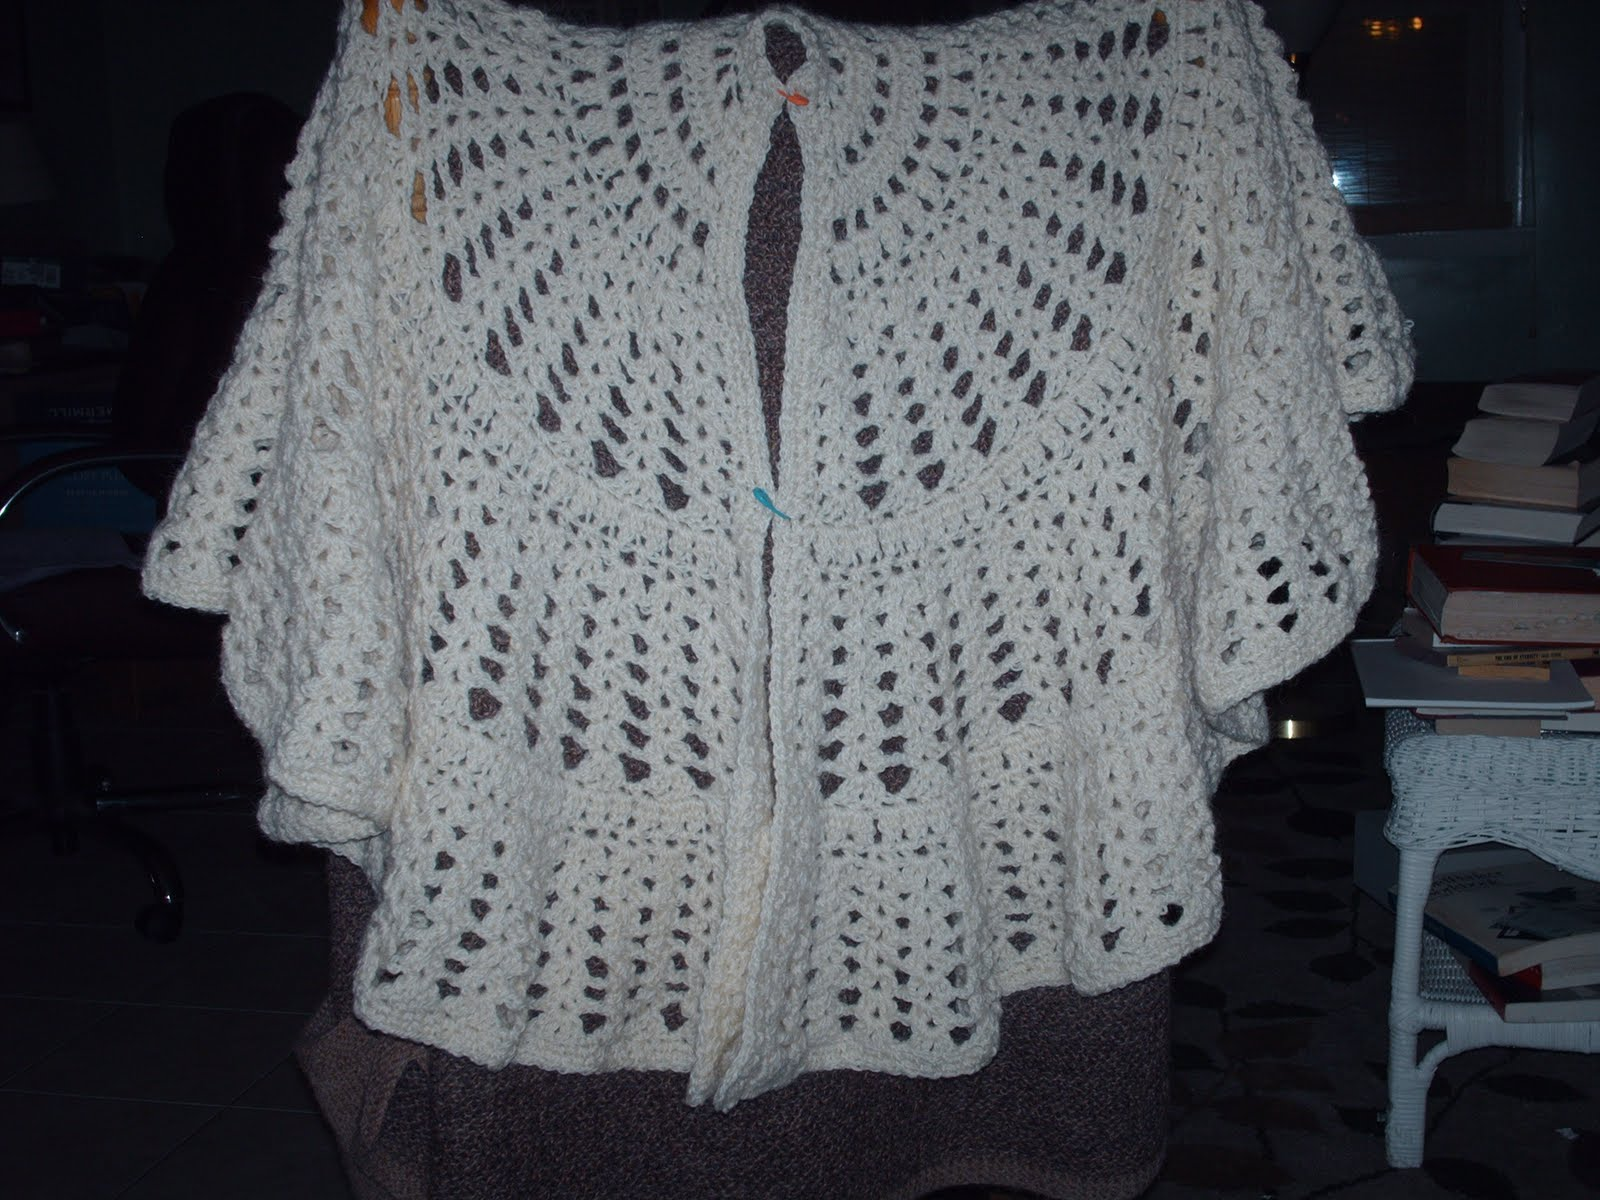 Crochet Patterns Shawls And Wraps : CROCHETED CIRCULAR SHAWL PATTERN Crochet Projects